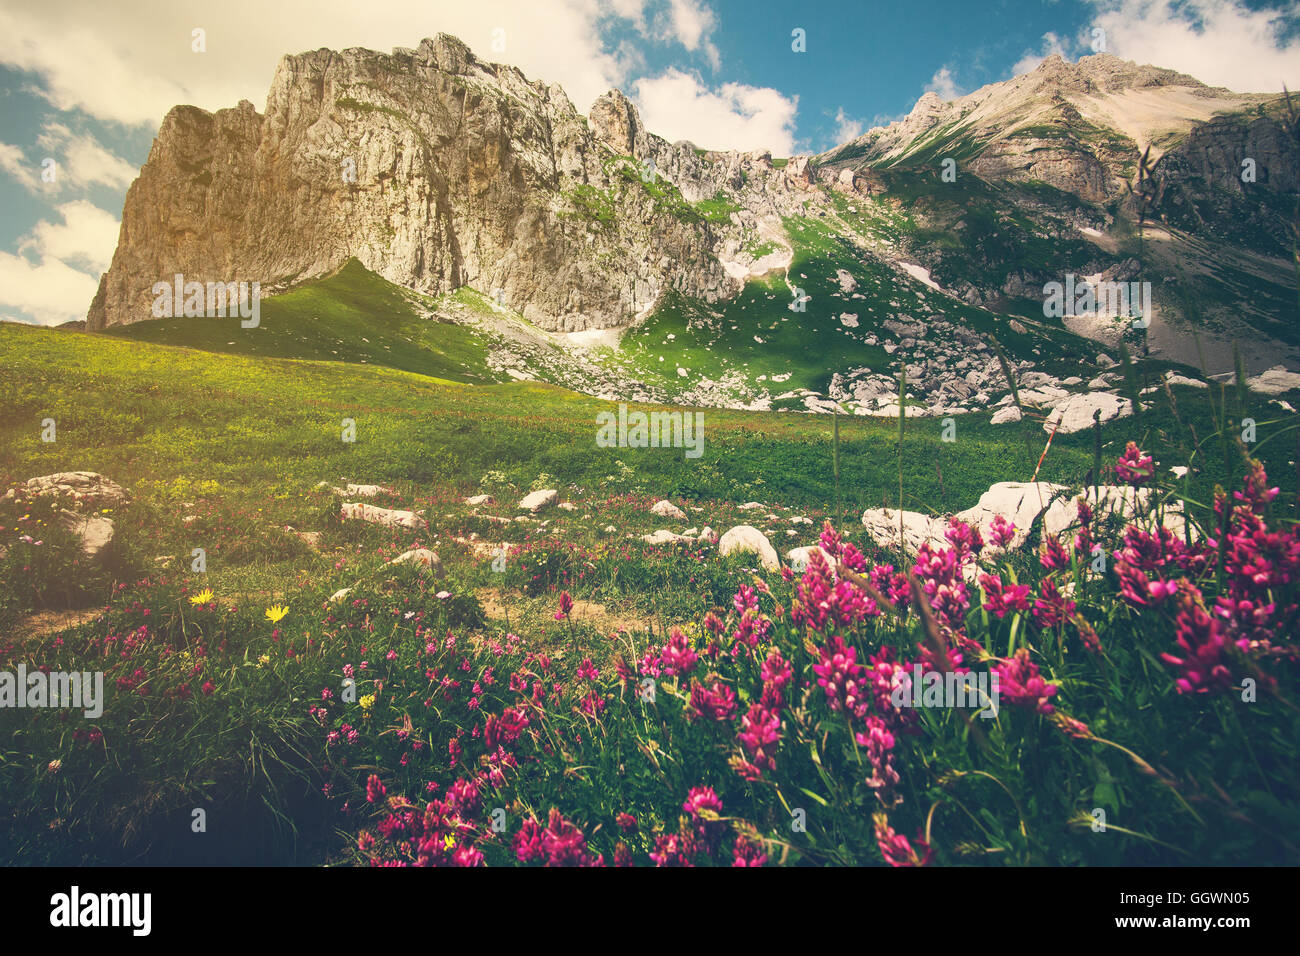 Rocky Mountains and green alpine valley with pink flowers Landscape Summer Travel scenic view - Stock Image